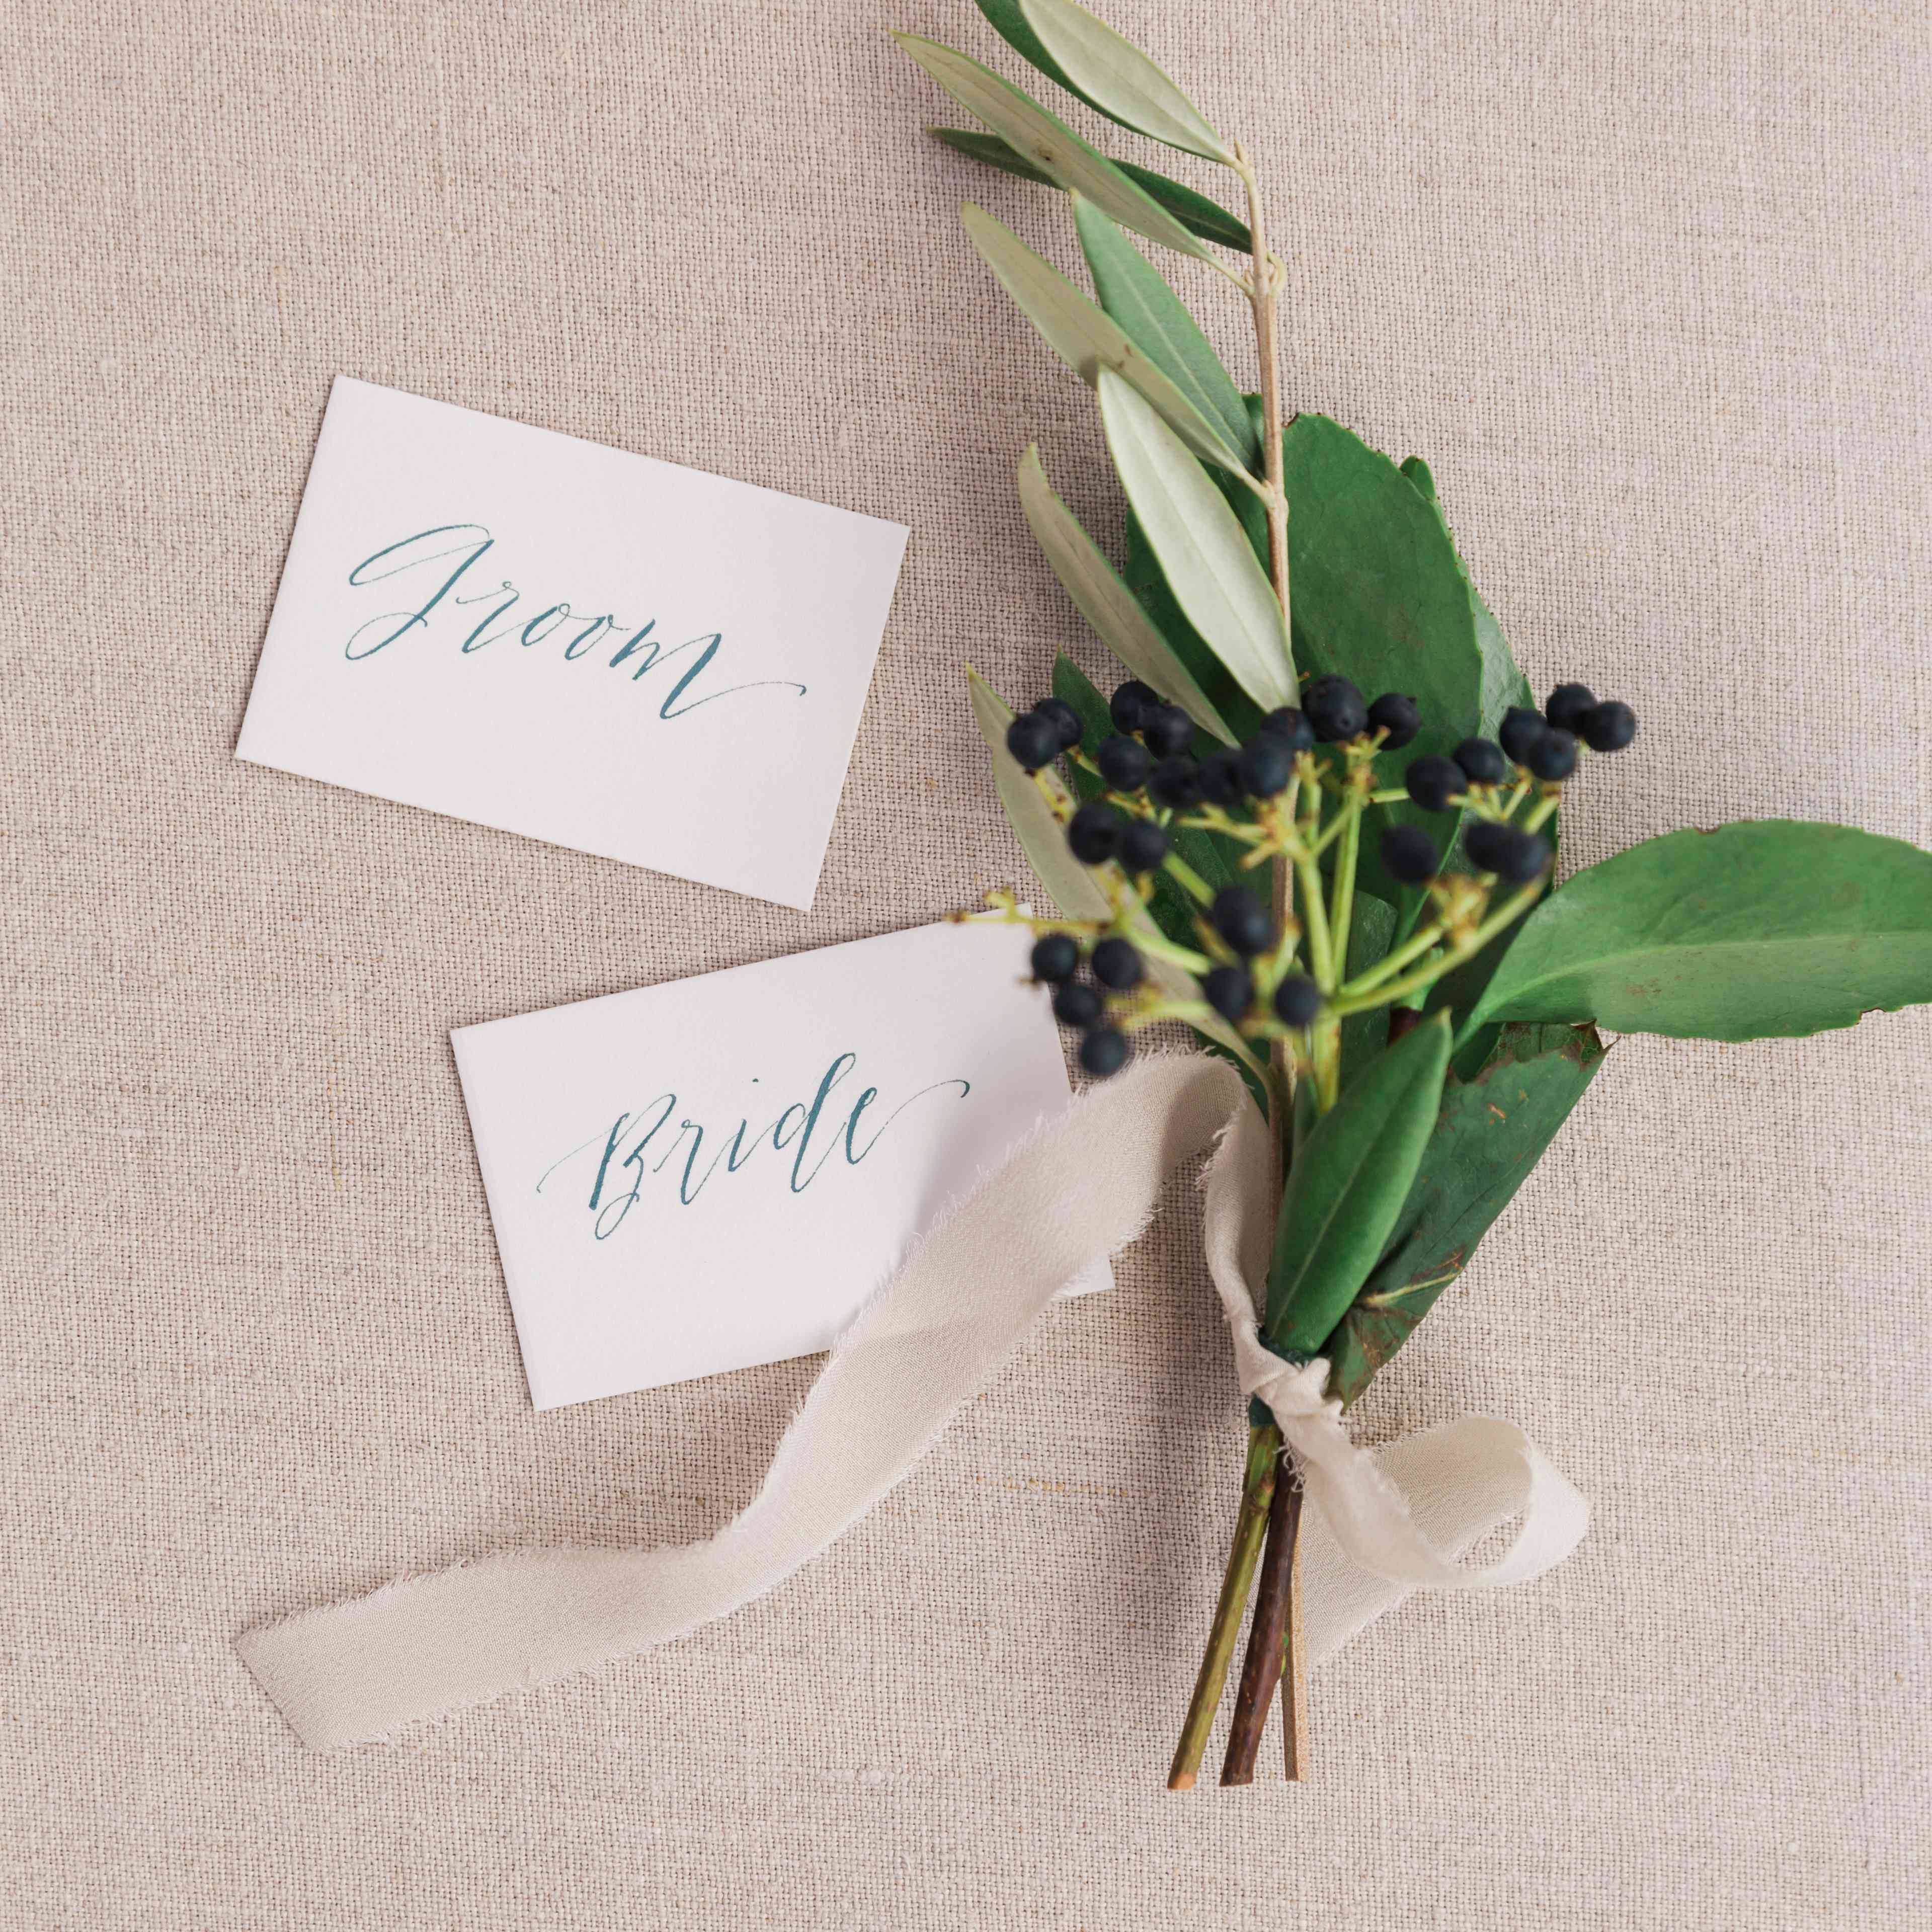 Olive Leaves and Mock Privet Berry Boutonniere